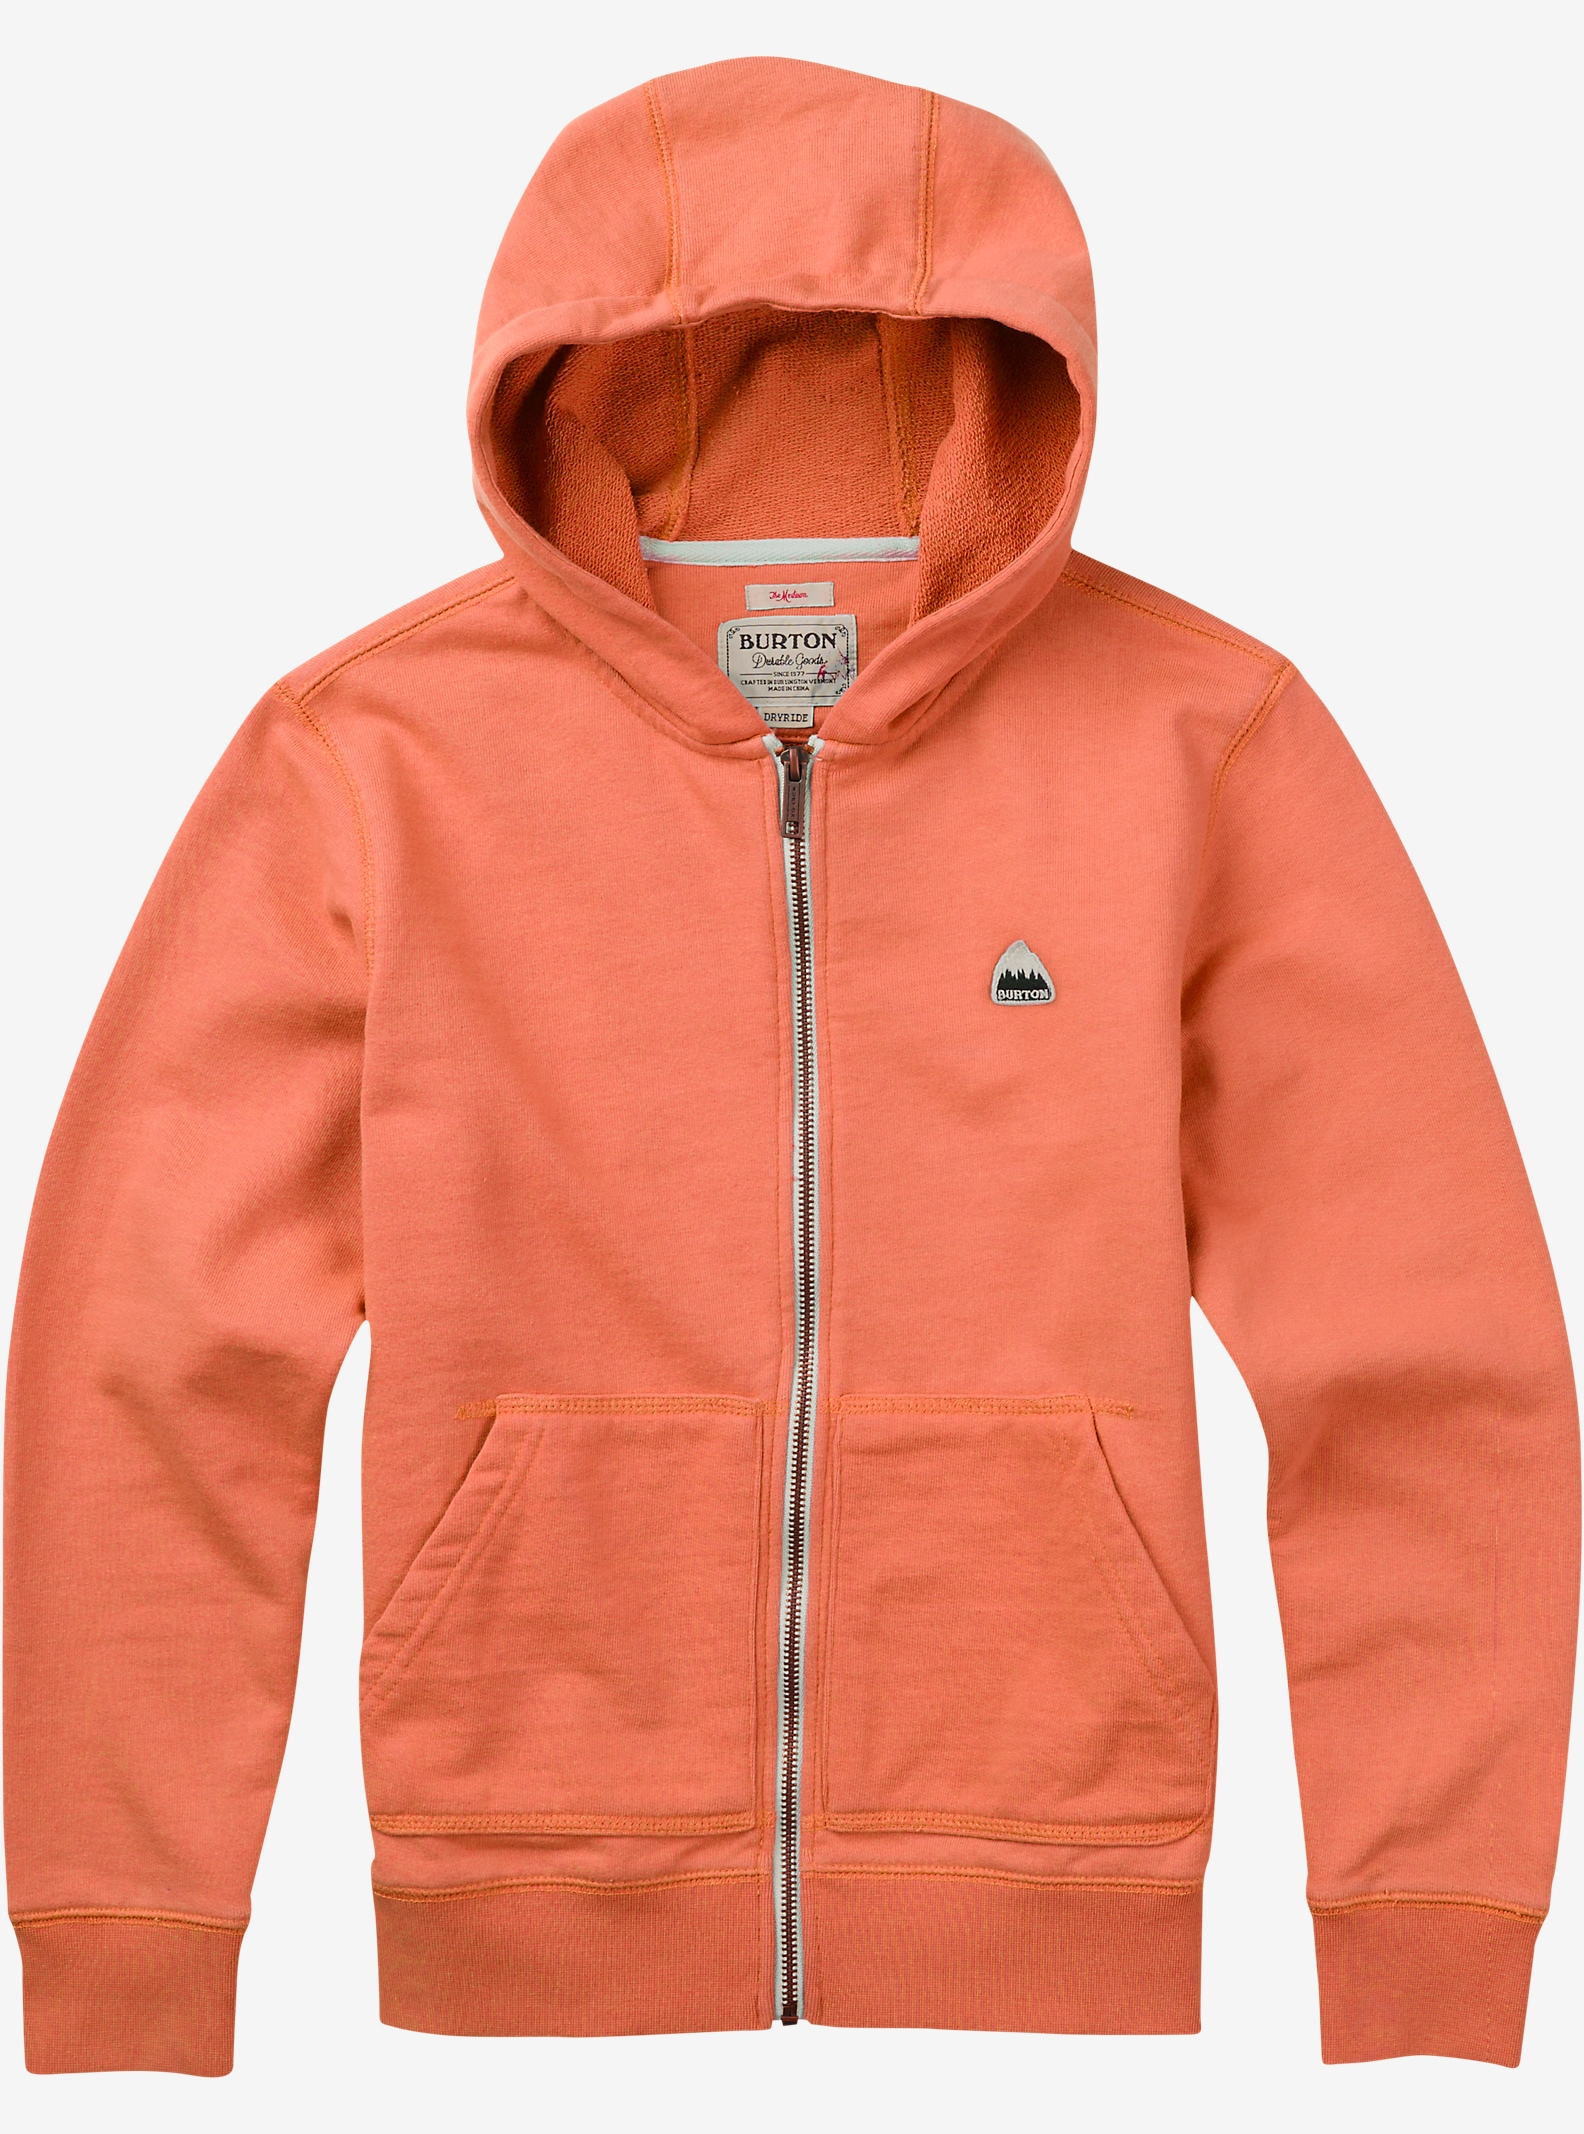 Burton Boys' Roe Full-Zip Hoodie shown in Fresh Salmon